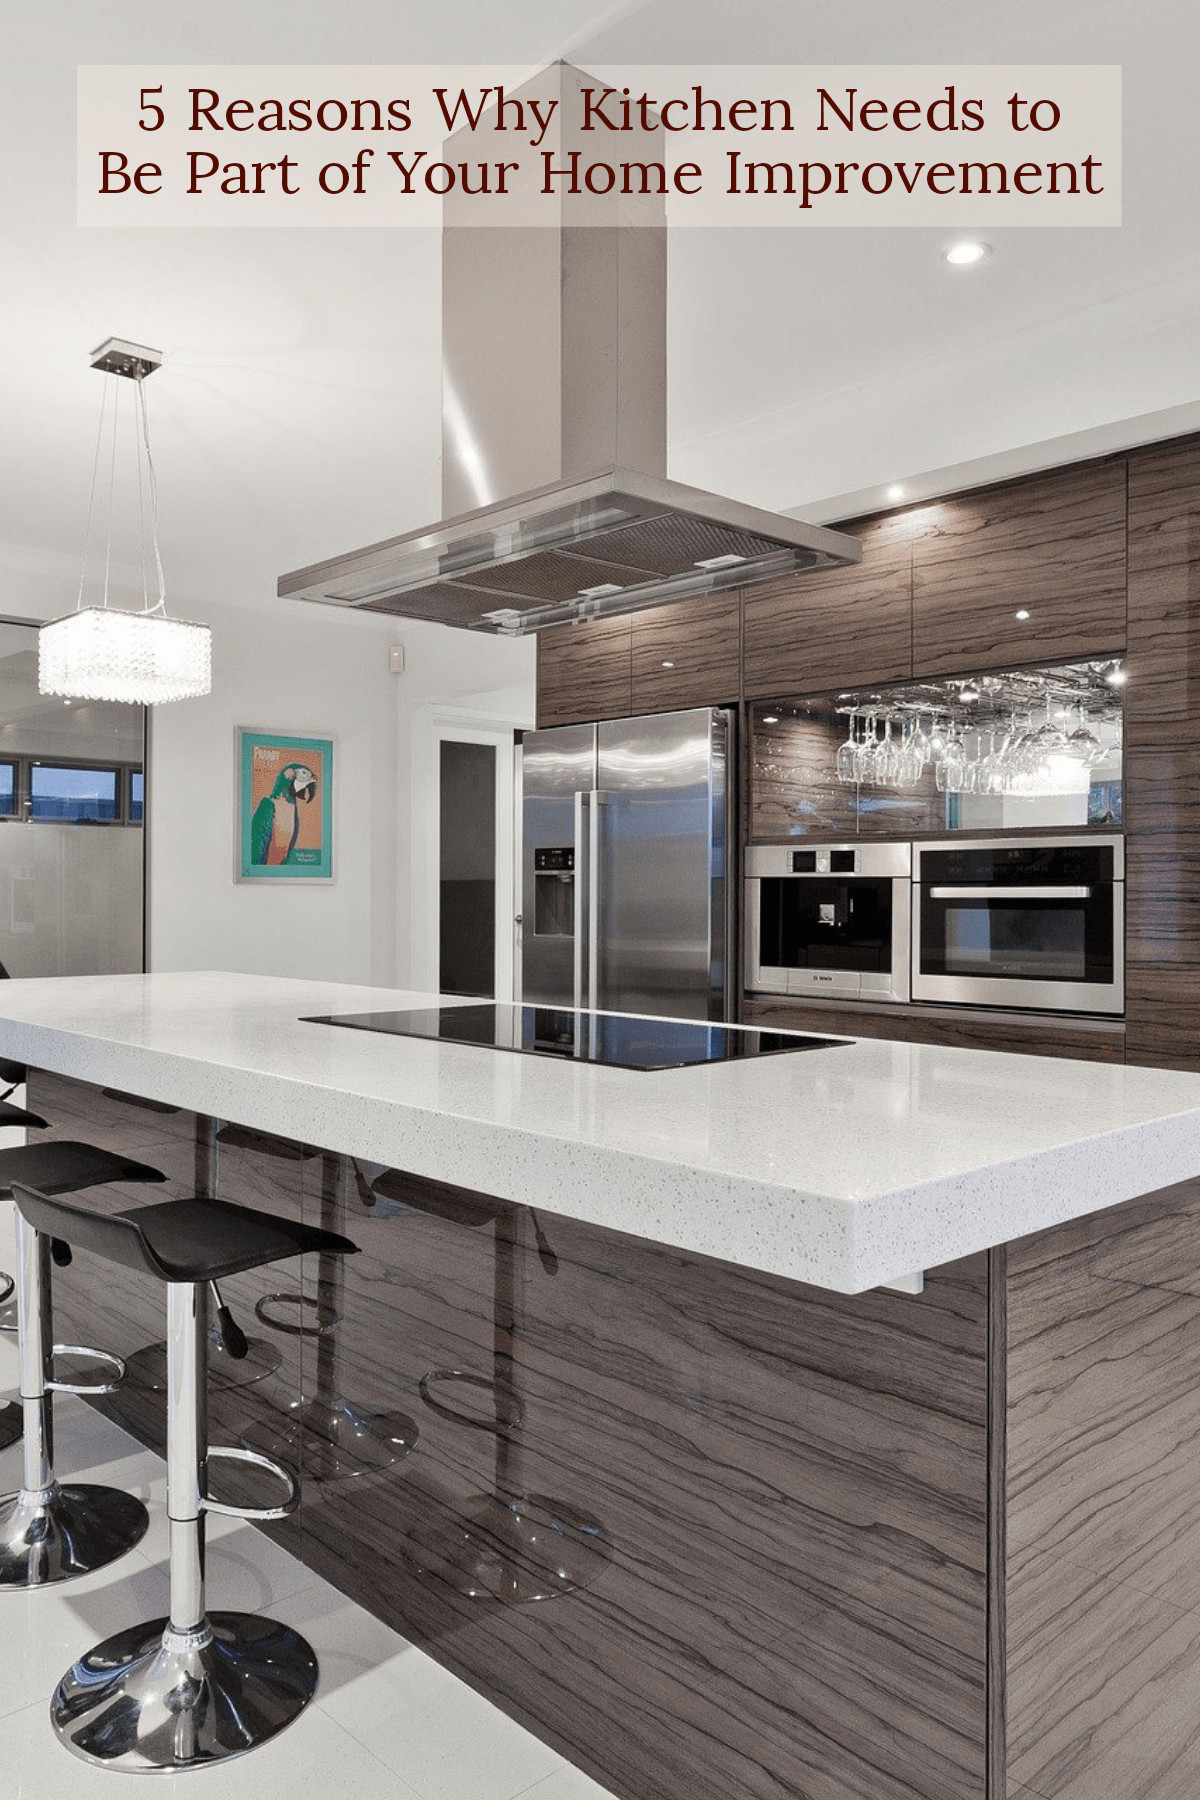 Image of 5 Reasons Why Kitchen Needs To Be Part Of Your Home Improvement